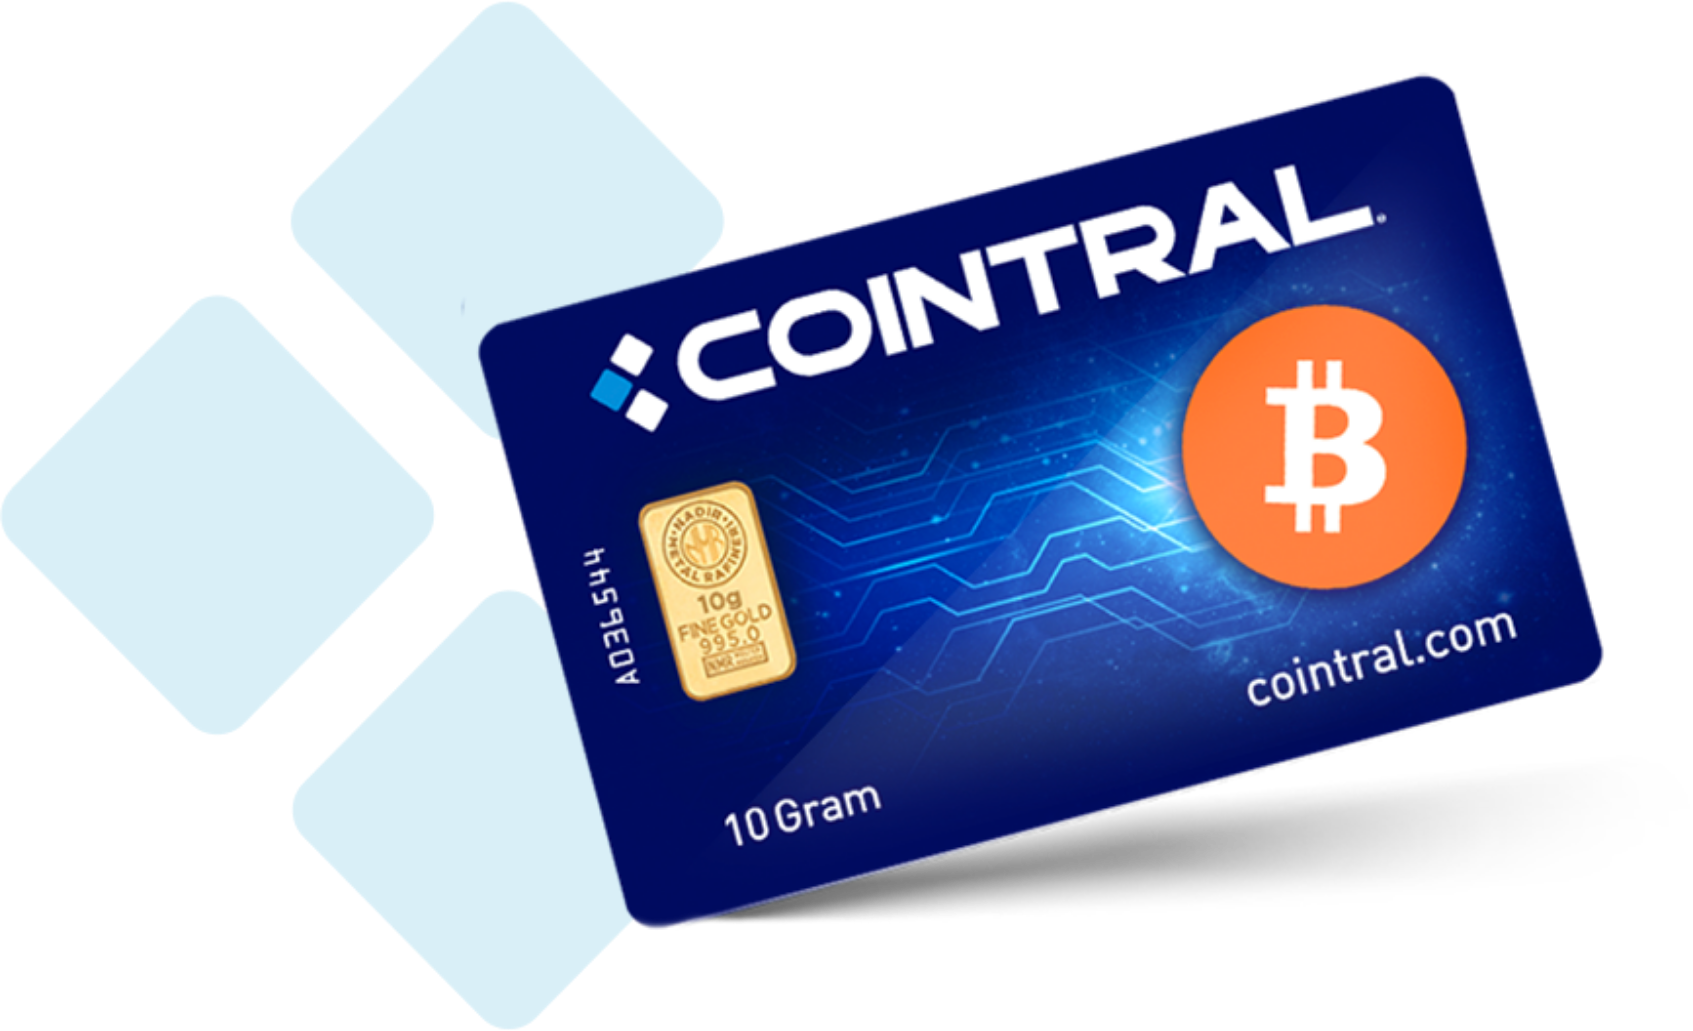 Cointral.store